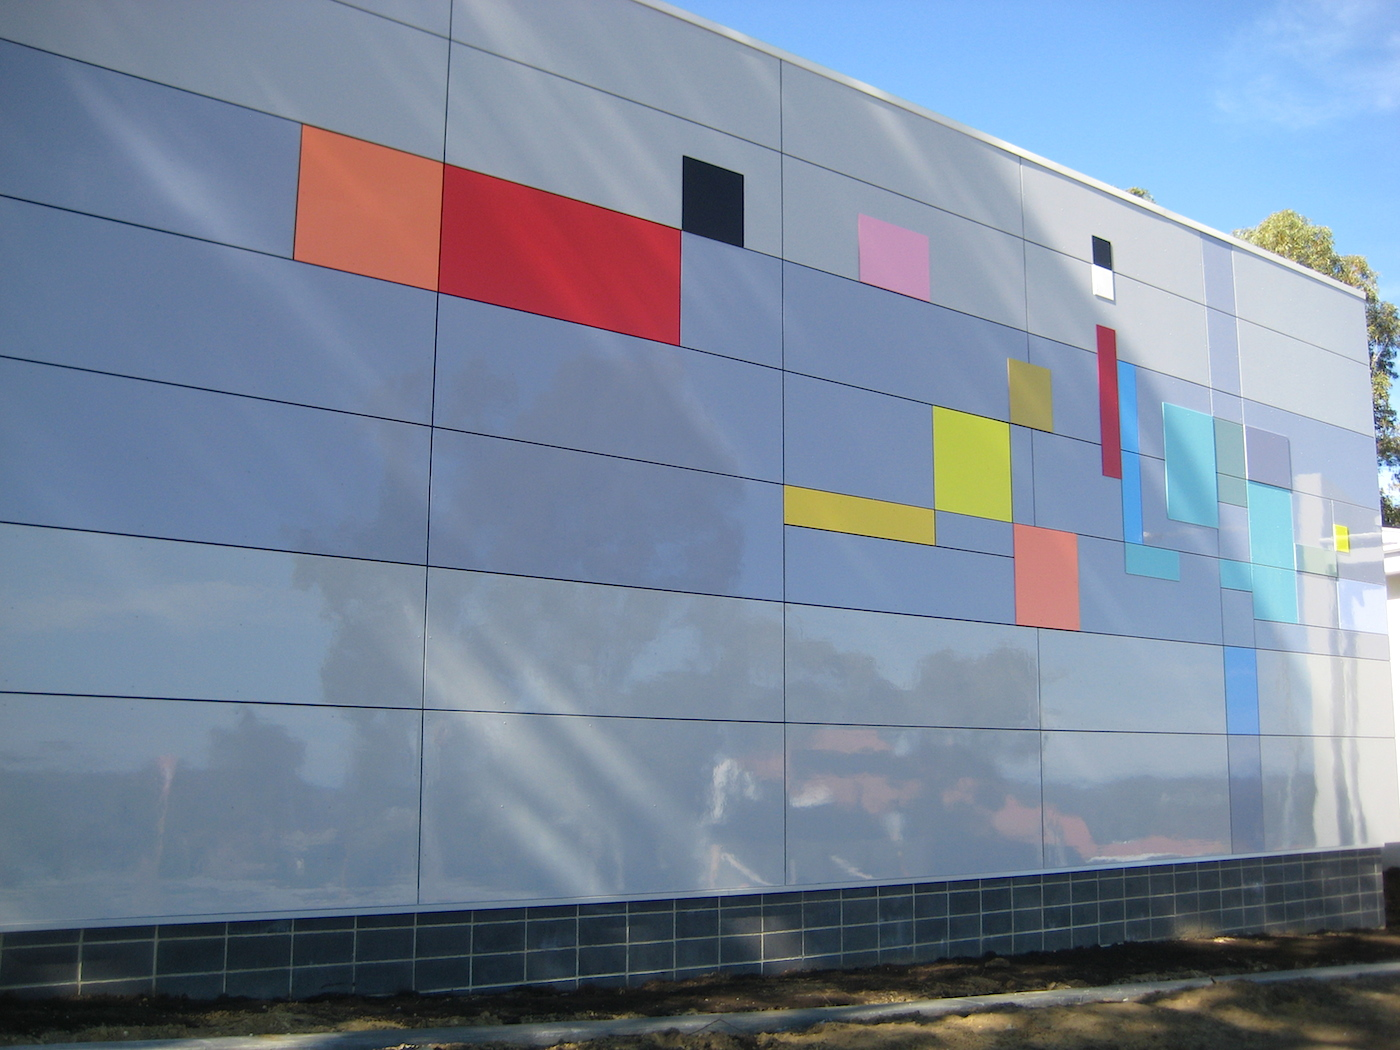 Eveline Kotai - Wanneroo Senior High School, Stage 1, Wall 1 - architects - Darryl Way & Associates